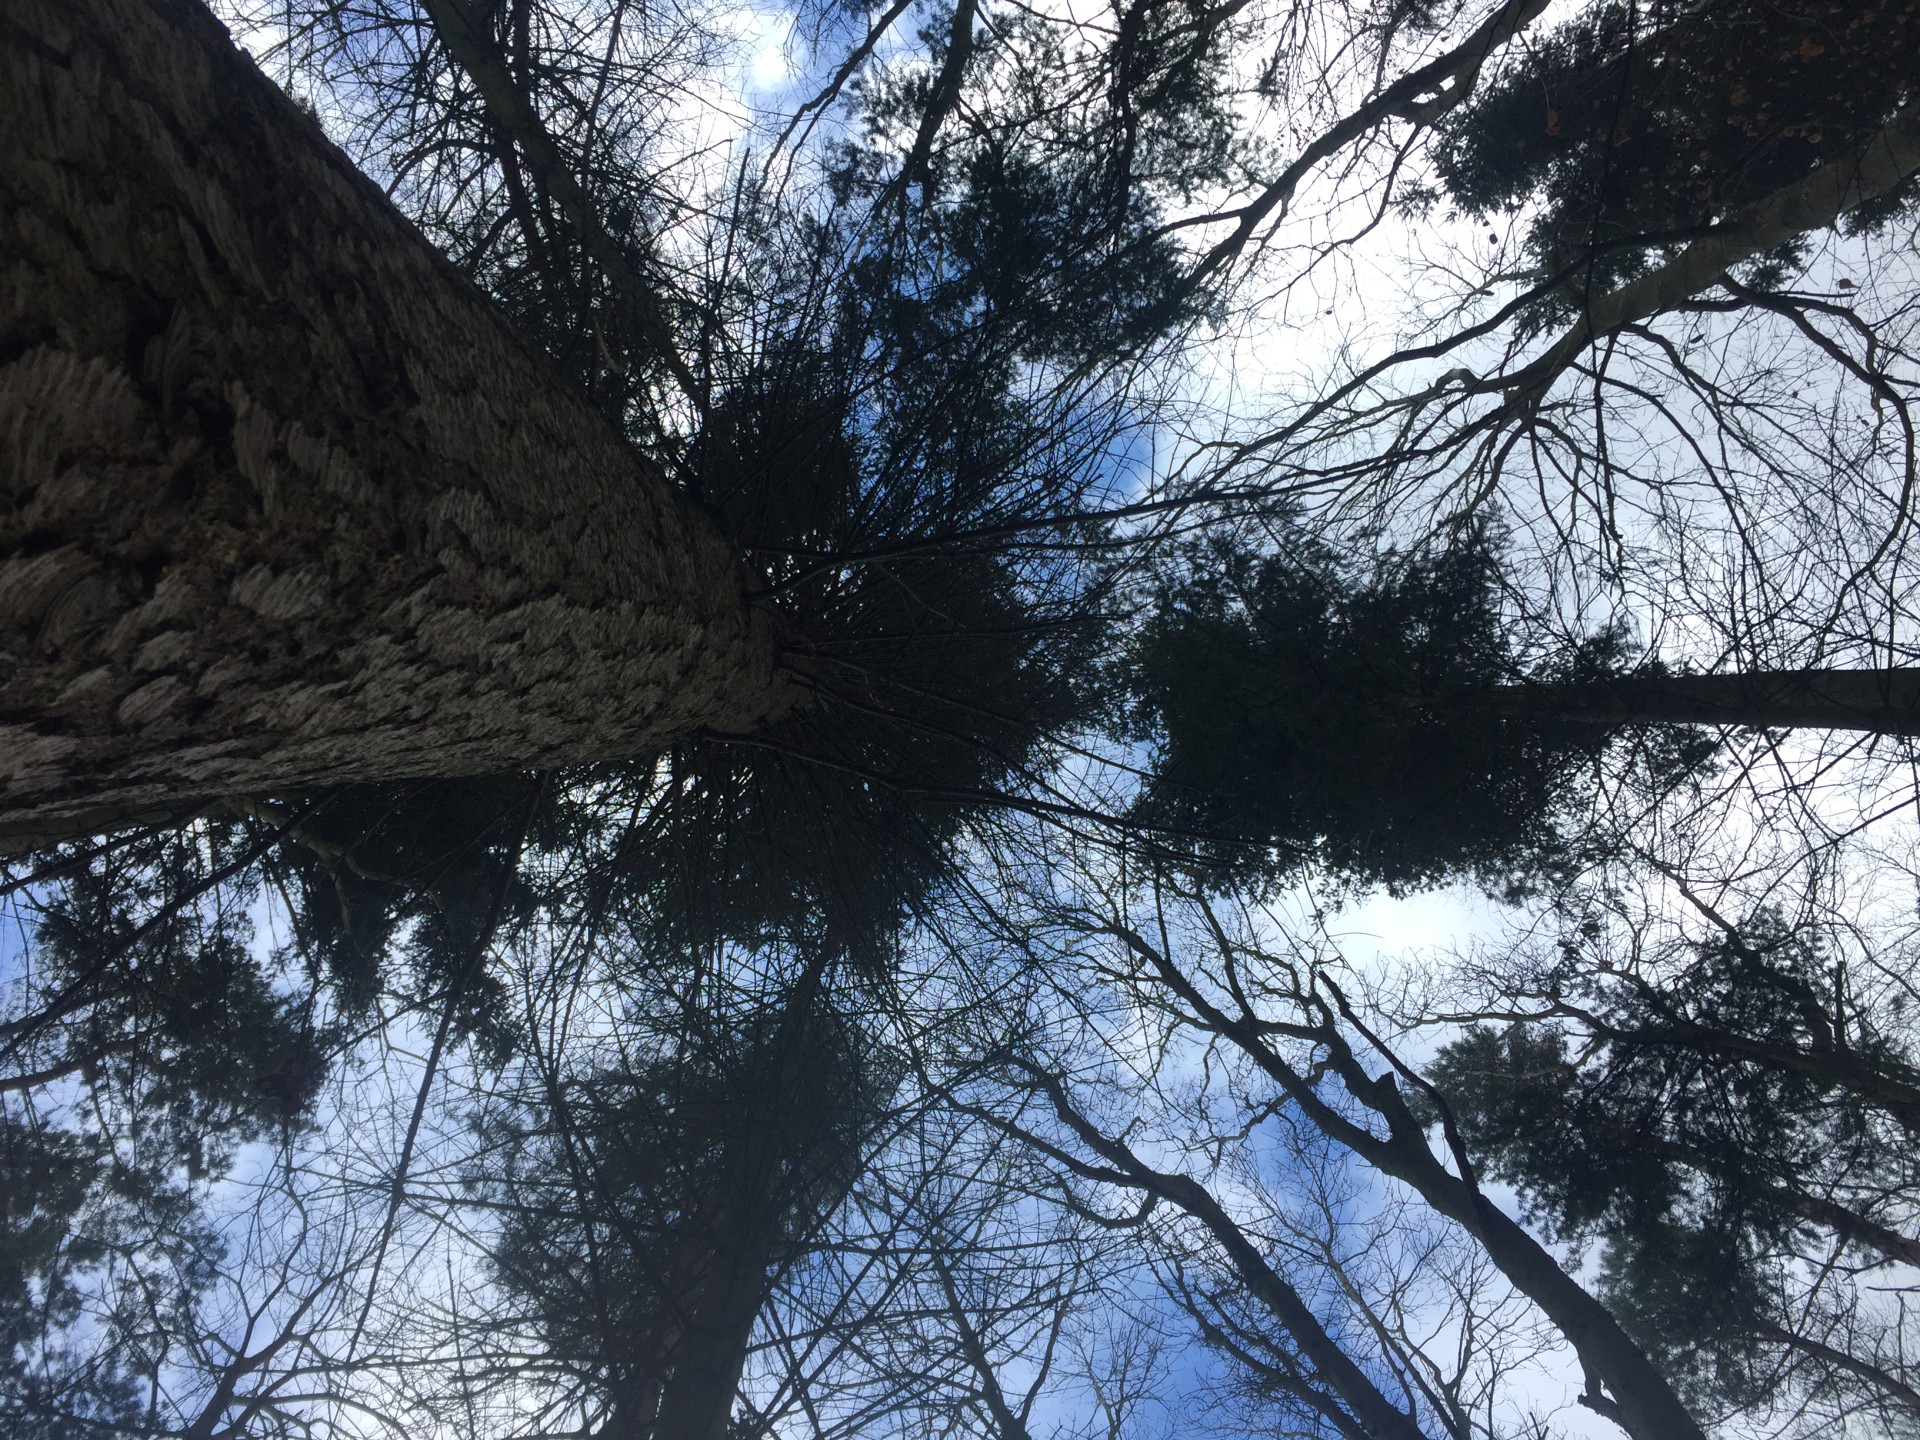 /storage/Looking up towards the tree canopy against a blue sky.